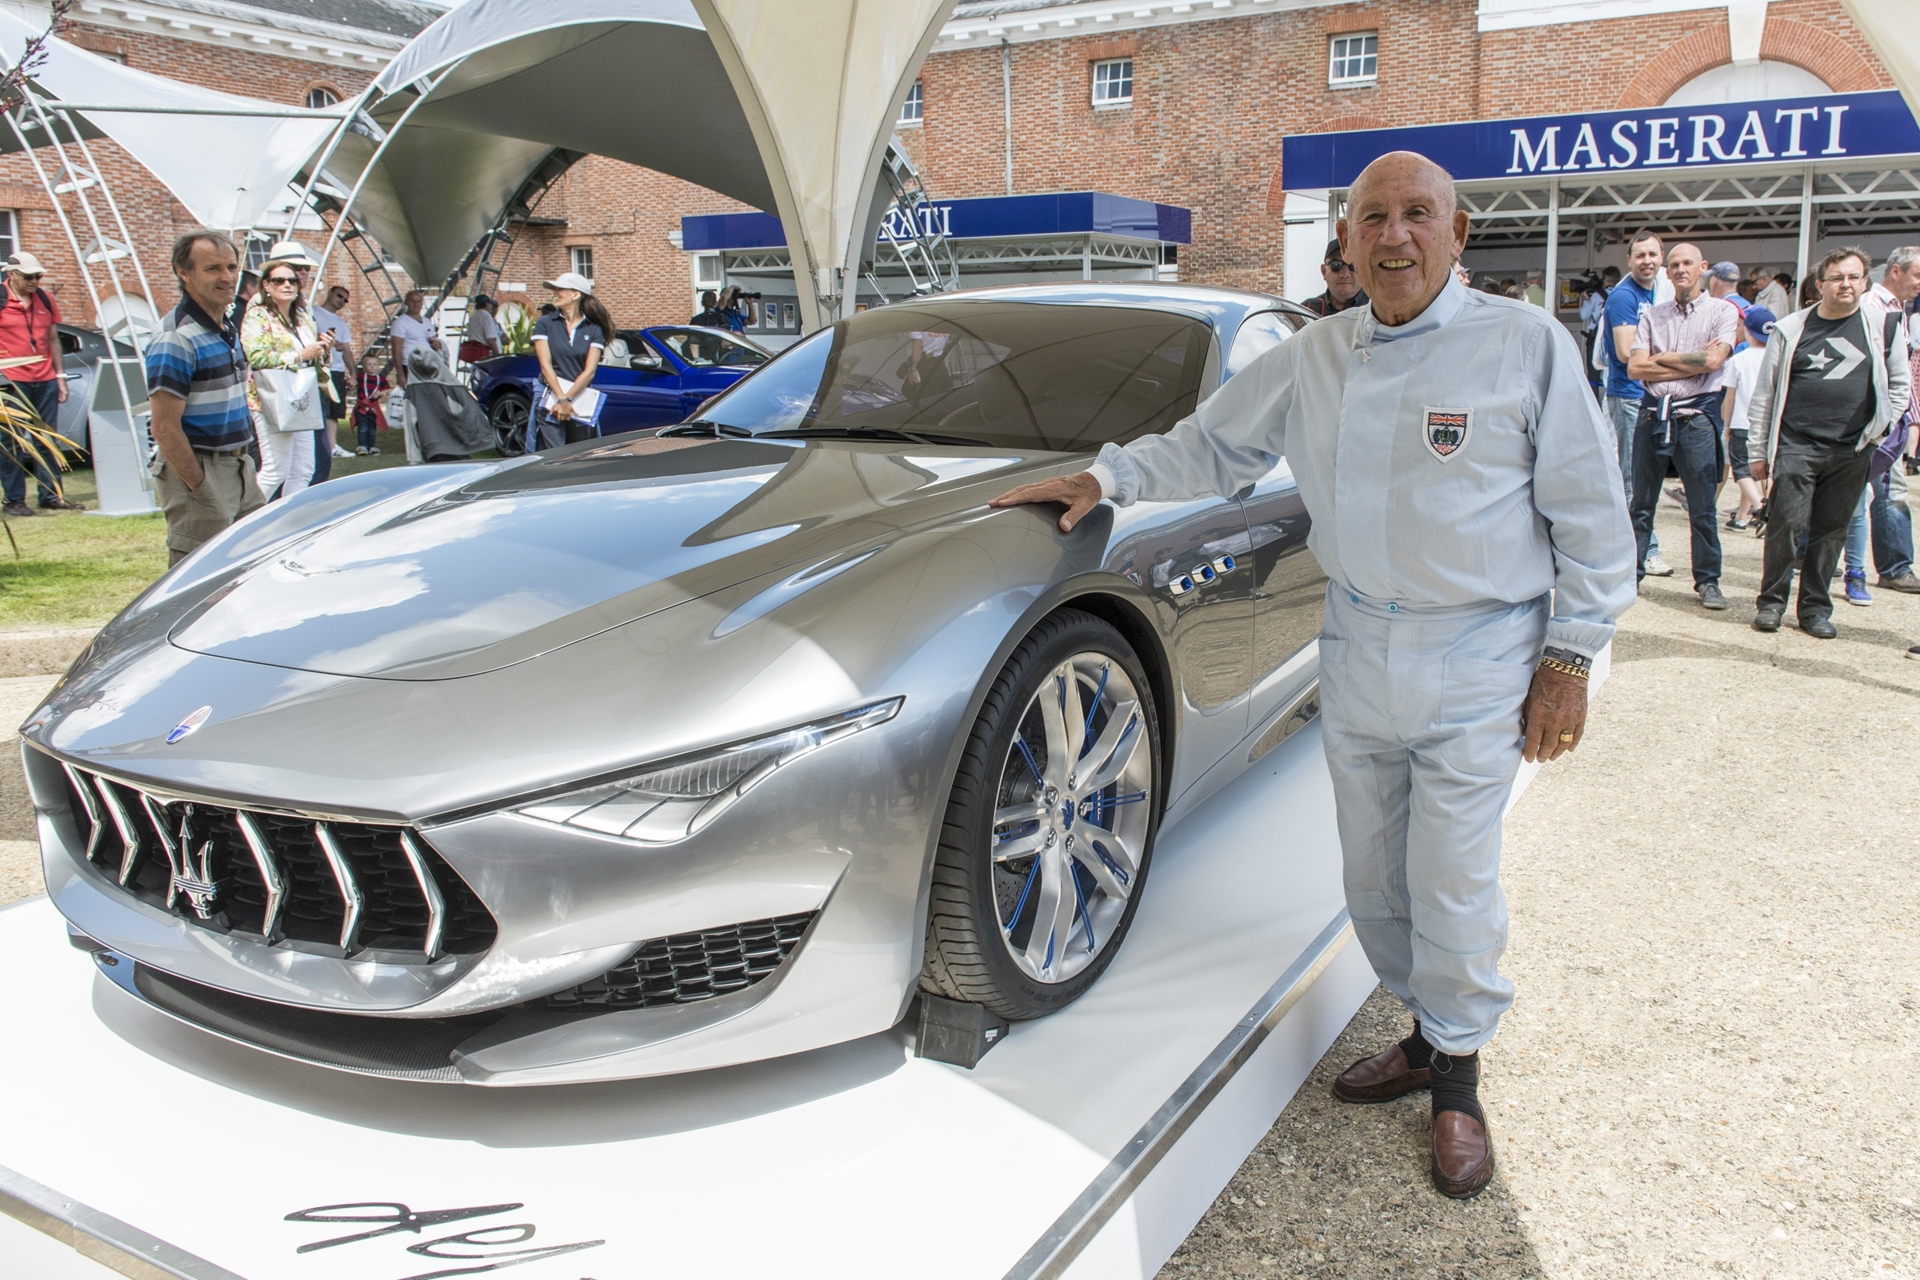 Stirling_Moss_and_Alfieri